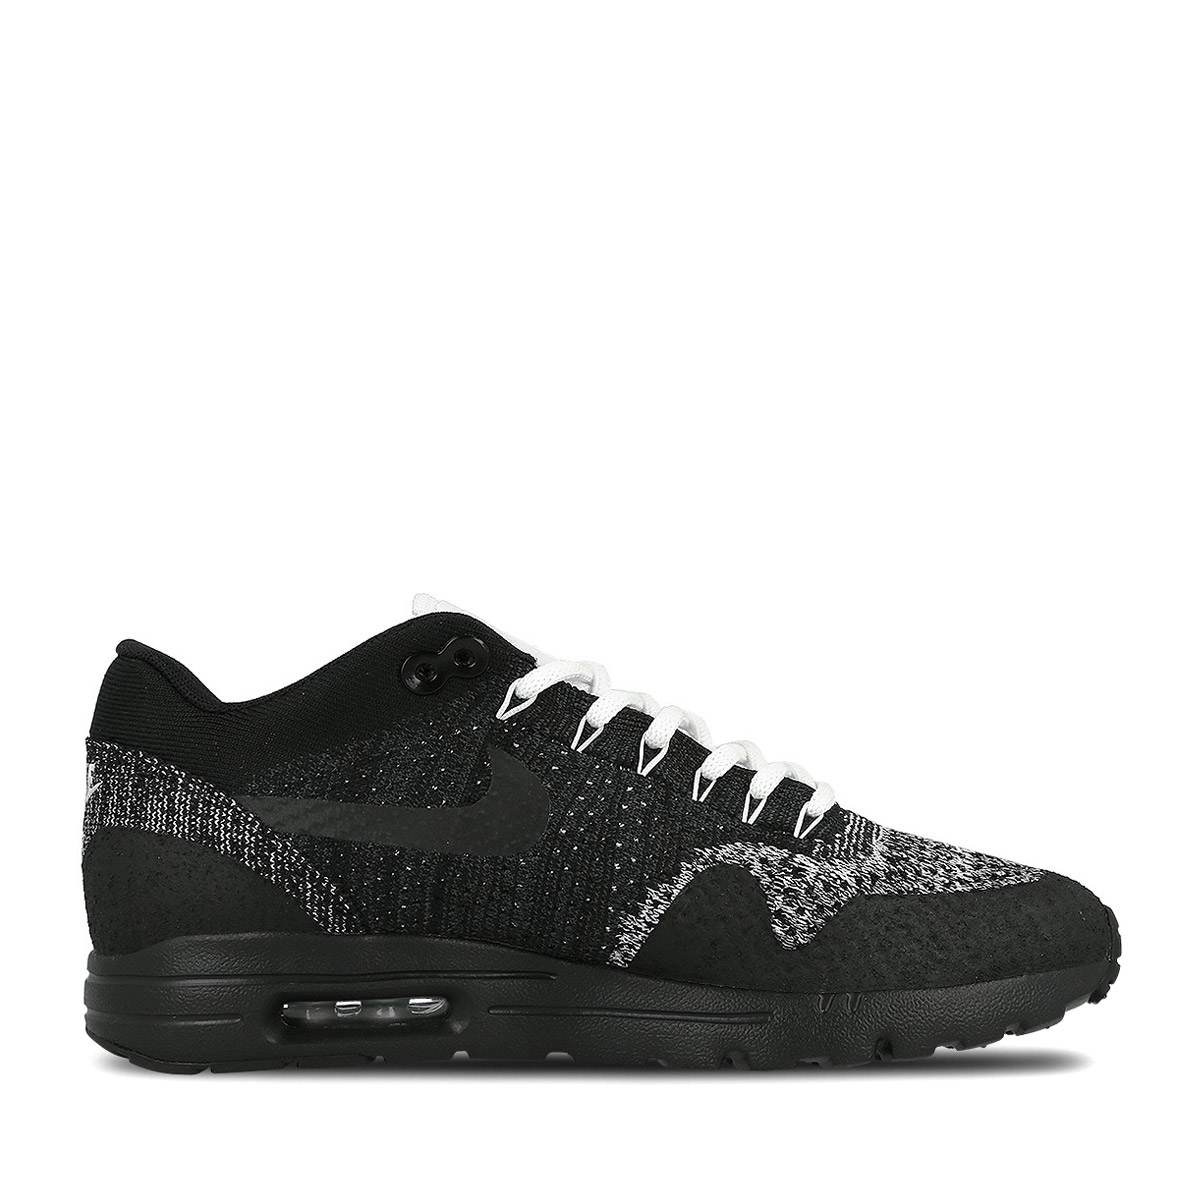 8110fad1807b NIKE WMNS AIR MAX 1 ULTRA FLYKNIT (Nike wmns Air Max 1 ultra Flint) BLACK  ANTHRACITE-WHITE 16HO-I